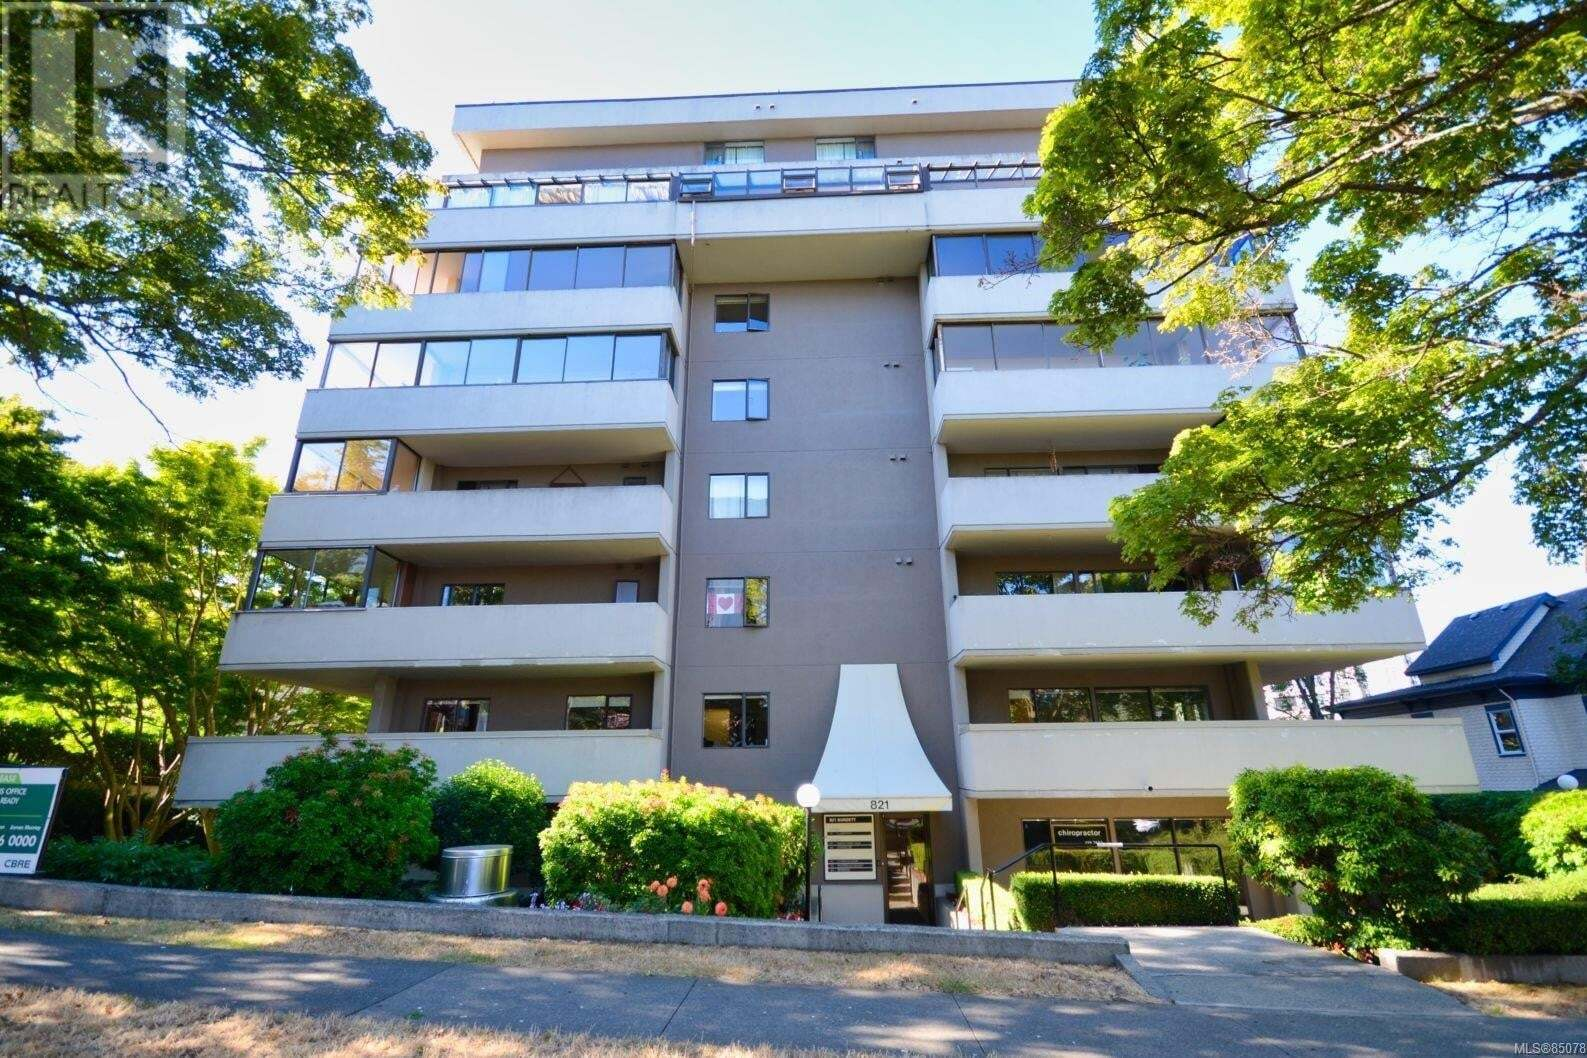 Condo for sale at 819 Burdett Ave Unit 601 Victoria British Columbia - MLS: 850786